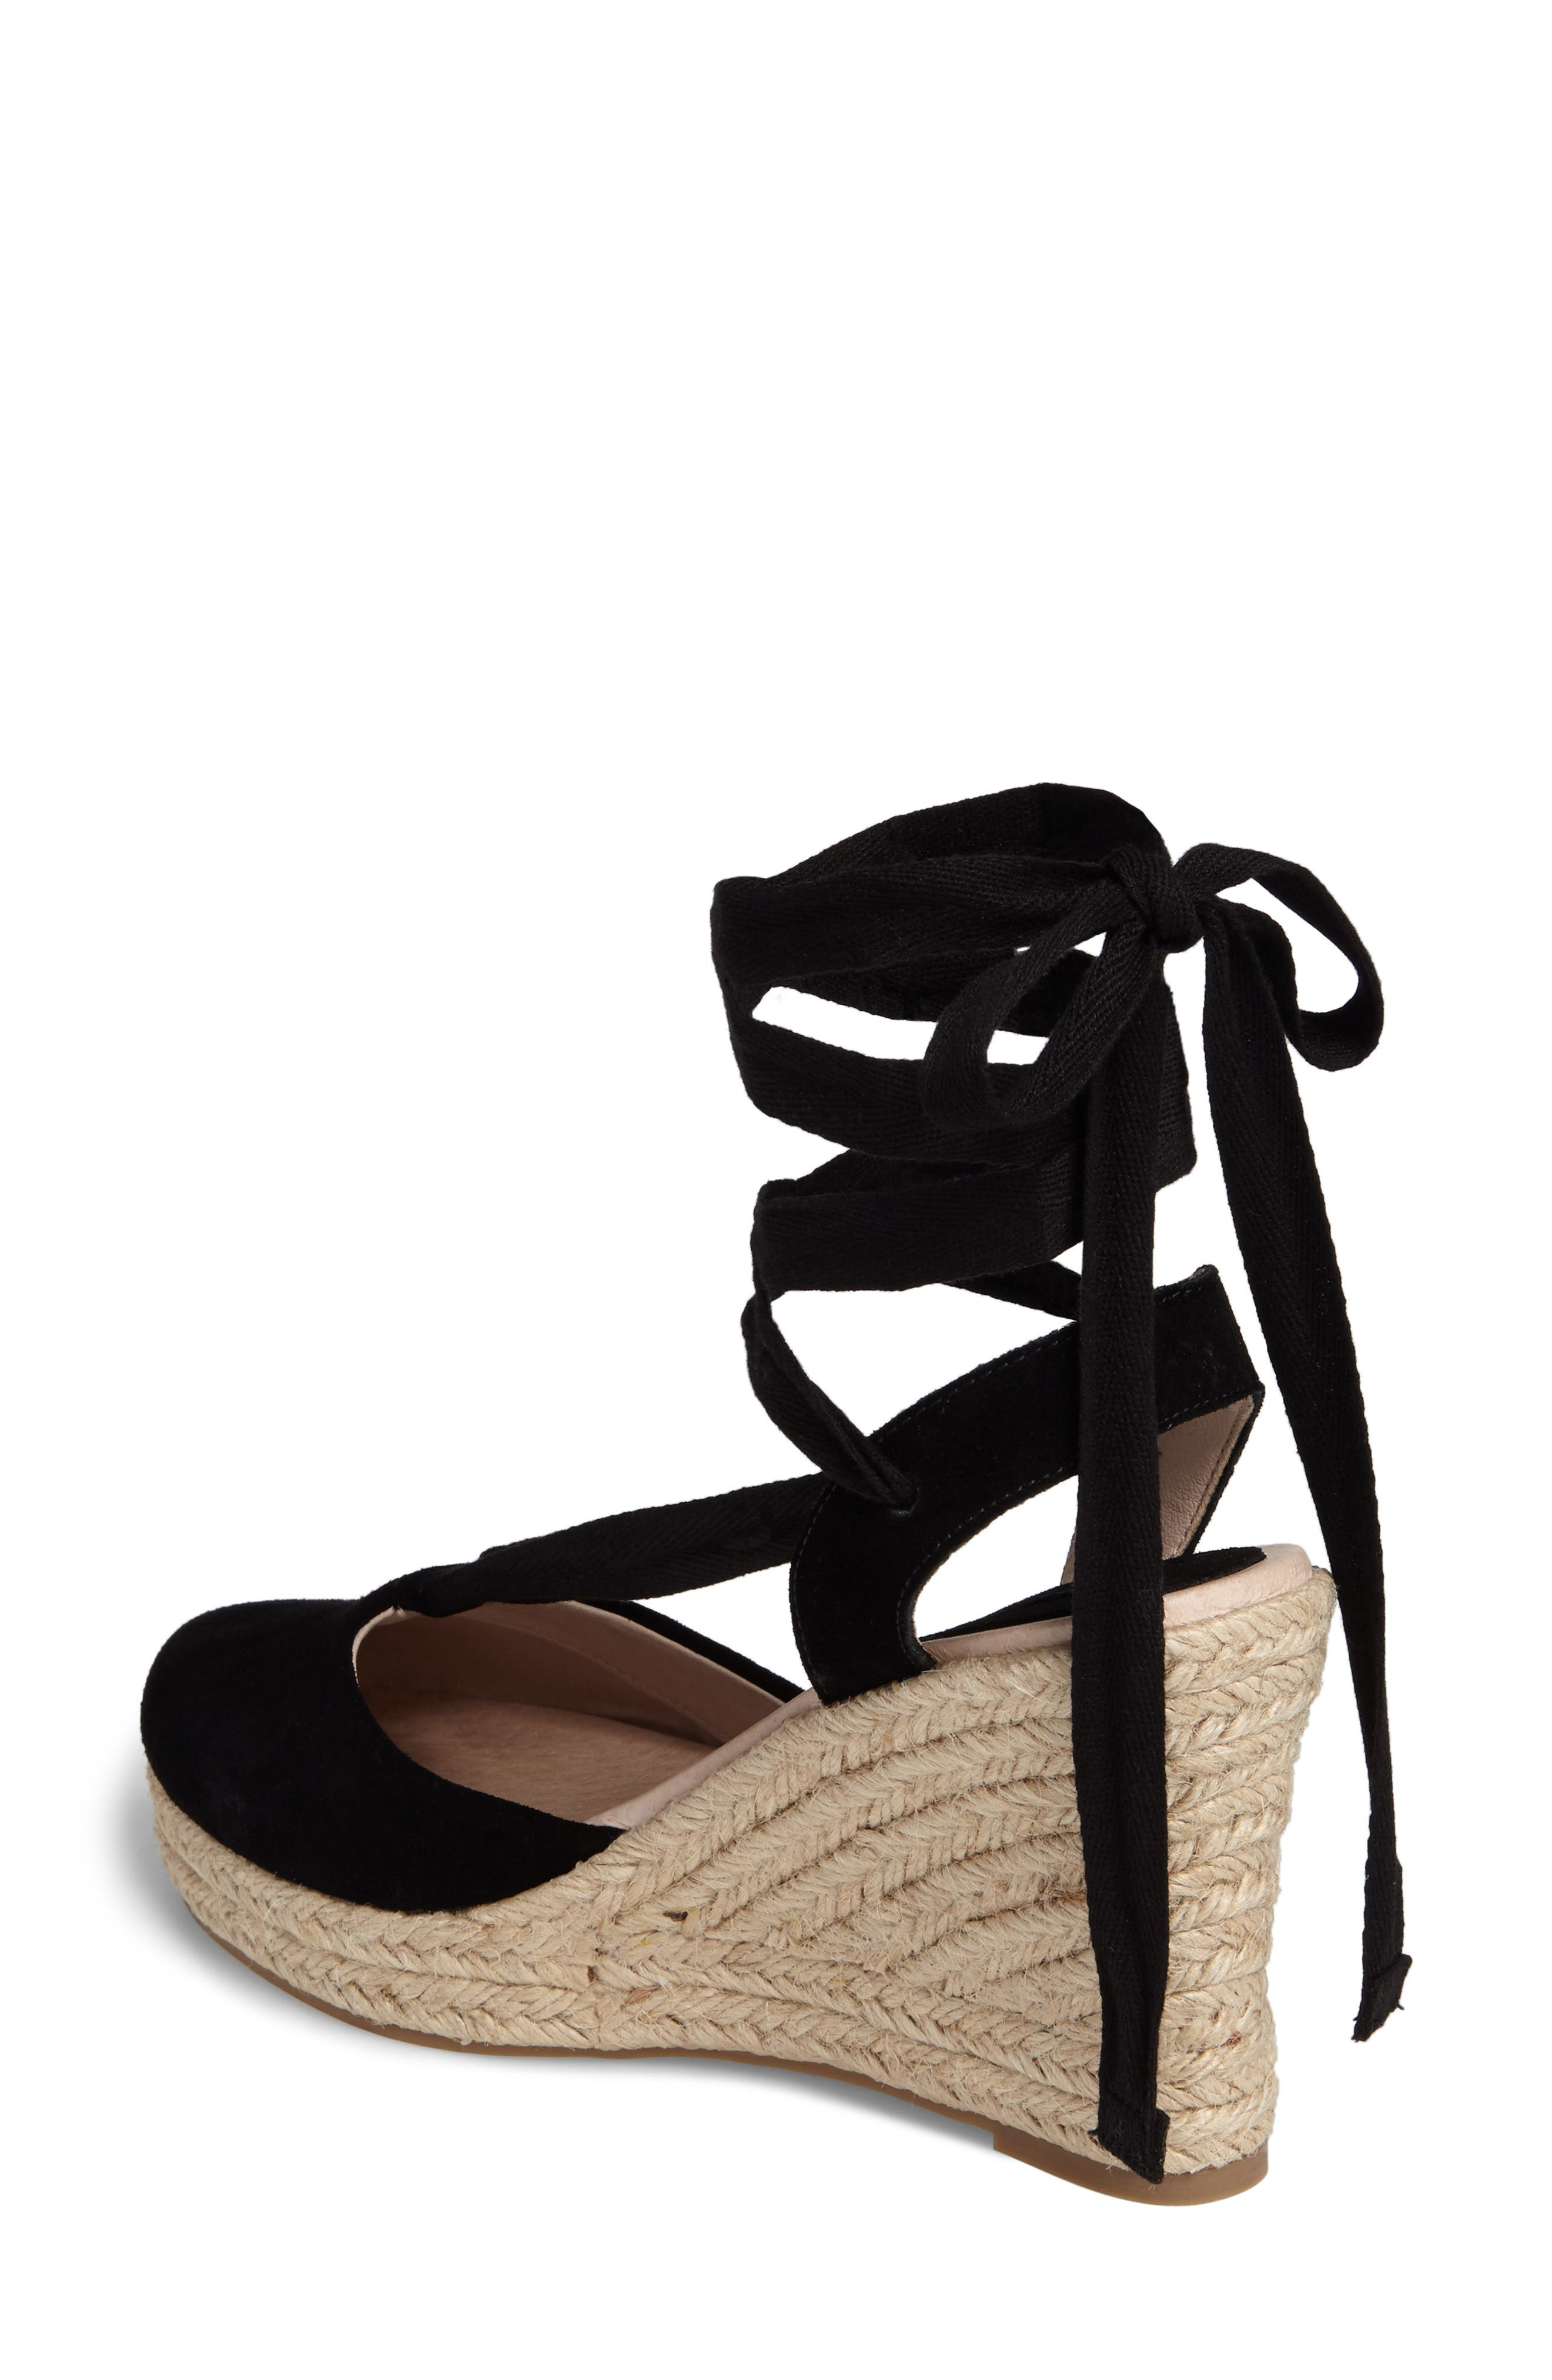 TOPSHOP, Waves Espadrille Wedge, Alternate thumbnail 2, color, 001